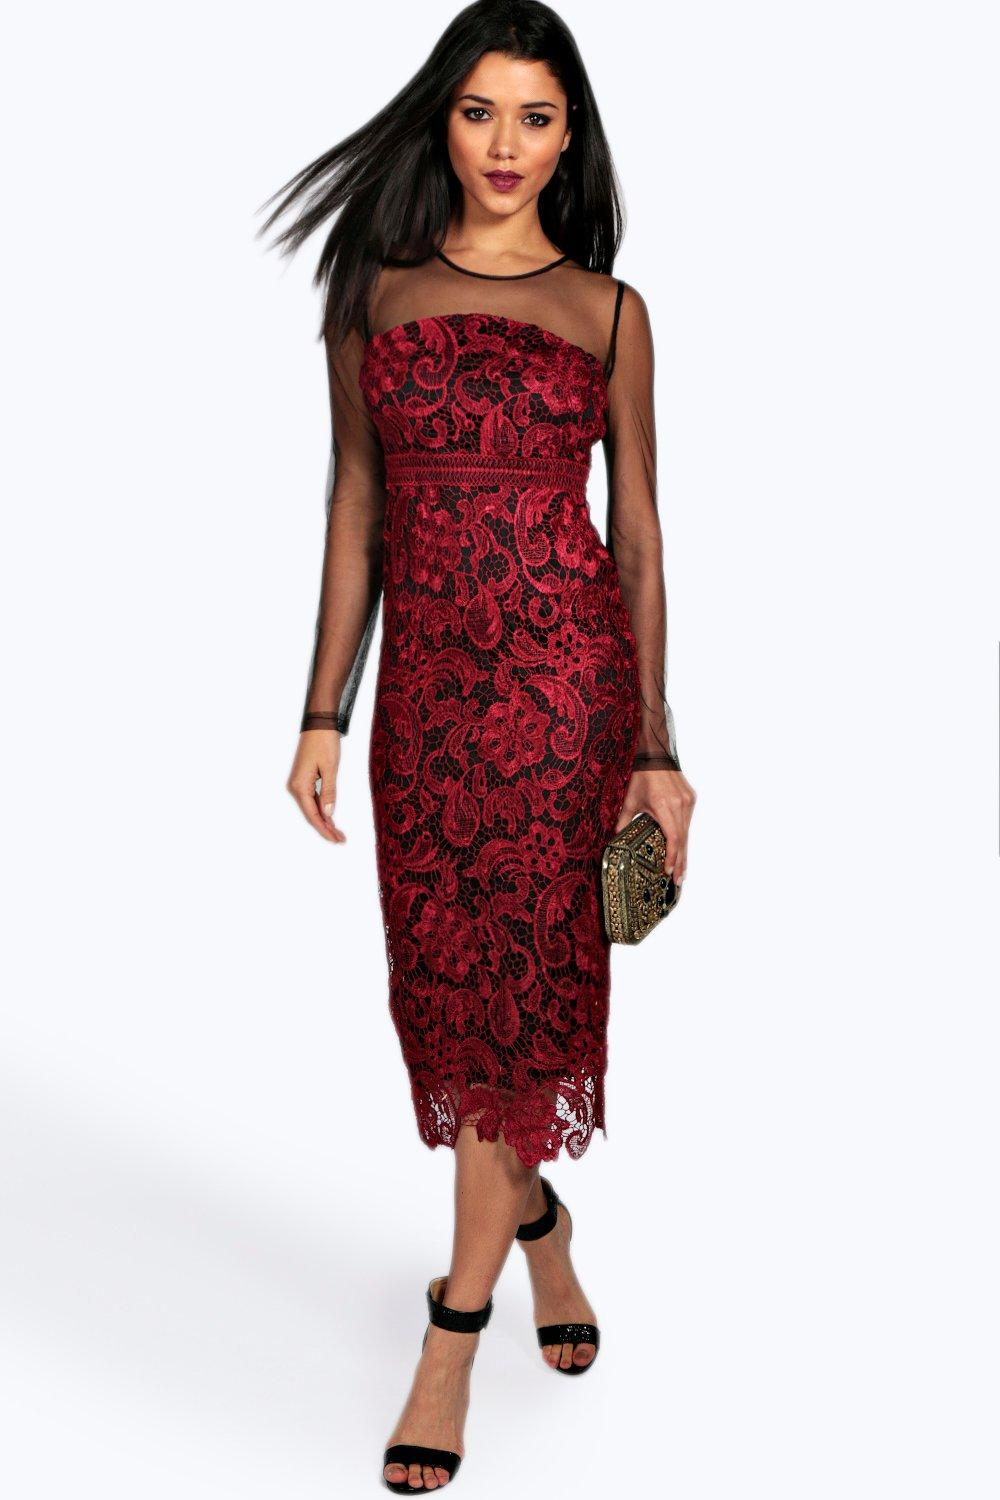 boohoo Boutique Ruth Lace Panelled Mesh Sleeve Midi Dress - berry $52.00 AT vintagedancer.com